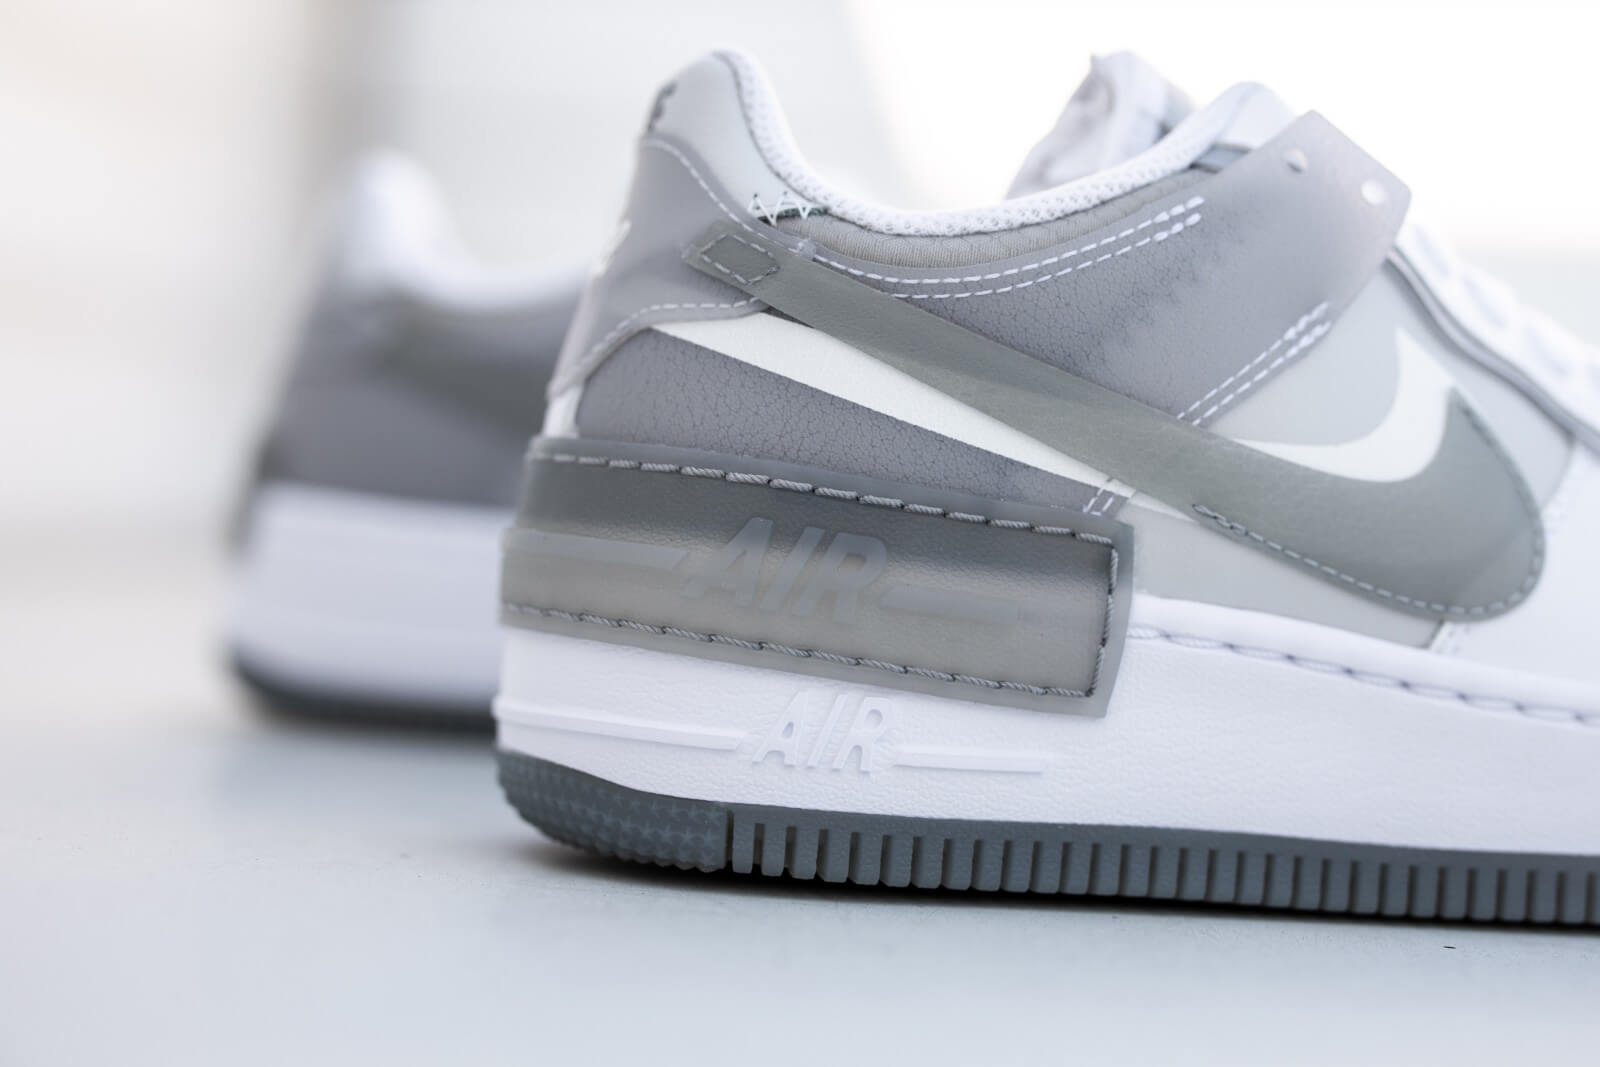 Nike Women S Air Force 1 Shadow White Particle Grey Grey Fog Photon Dust Ck6561 100 Arriving on the scene in october 2019, the women's nike shadow is as fresh as it gets, showcasing premium leather on the shadow displays 2 eyestays, 2 mudguards, 2 back tabs as well as 2 swooshes on each shoe to push the limits while. nike women s air force 1 shadow white particle grey grey fog photon dust